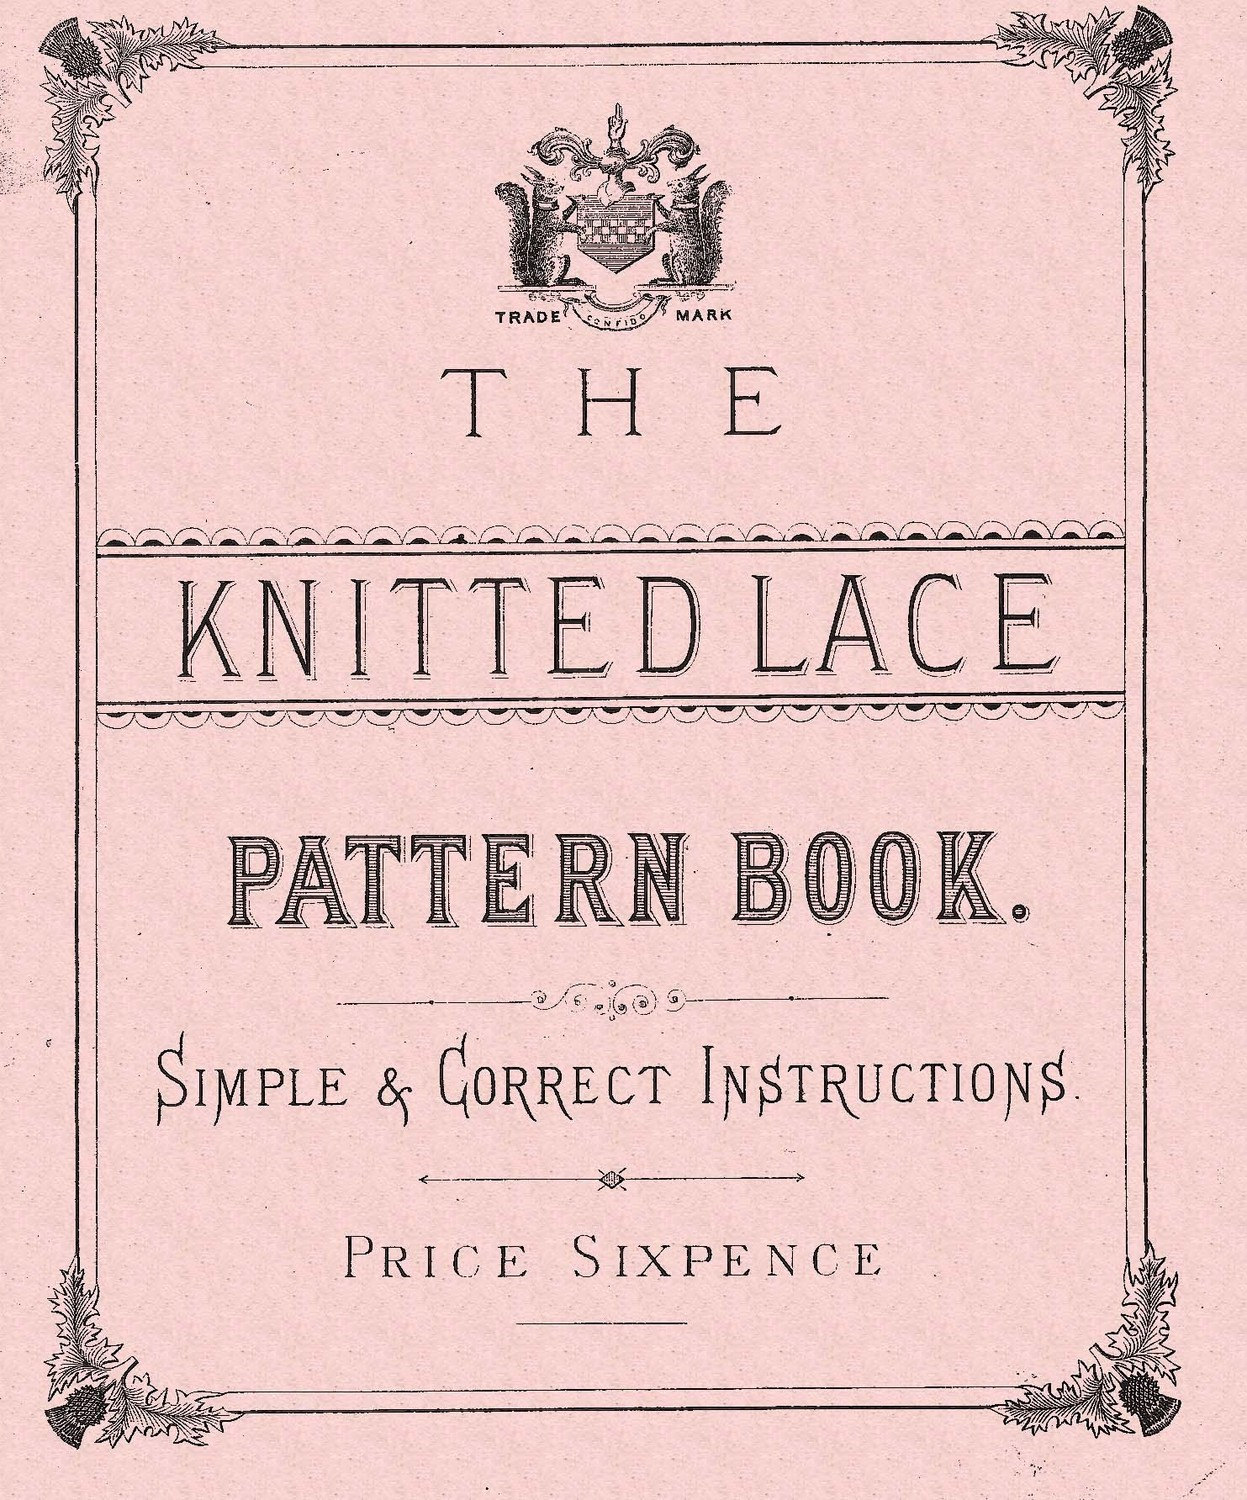 Knitting Pattern Book : Knitted lace patterns The Knitted Lace Pattern Book. C & W